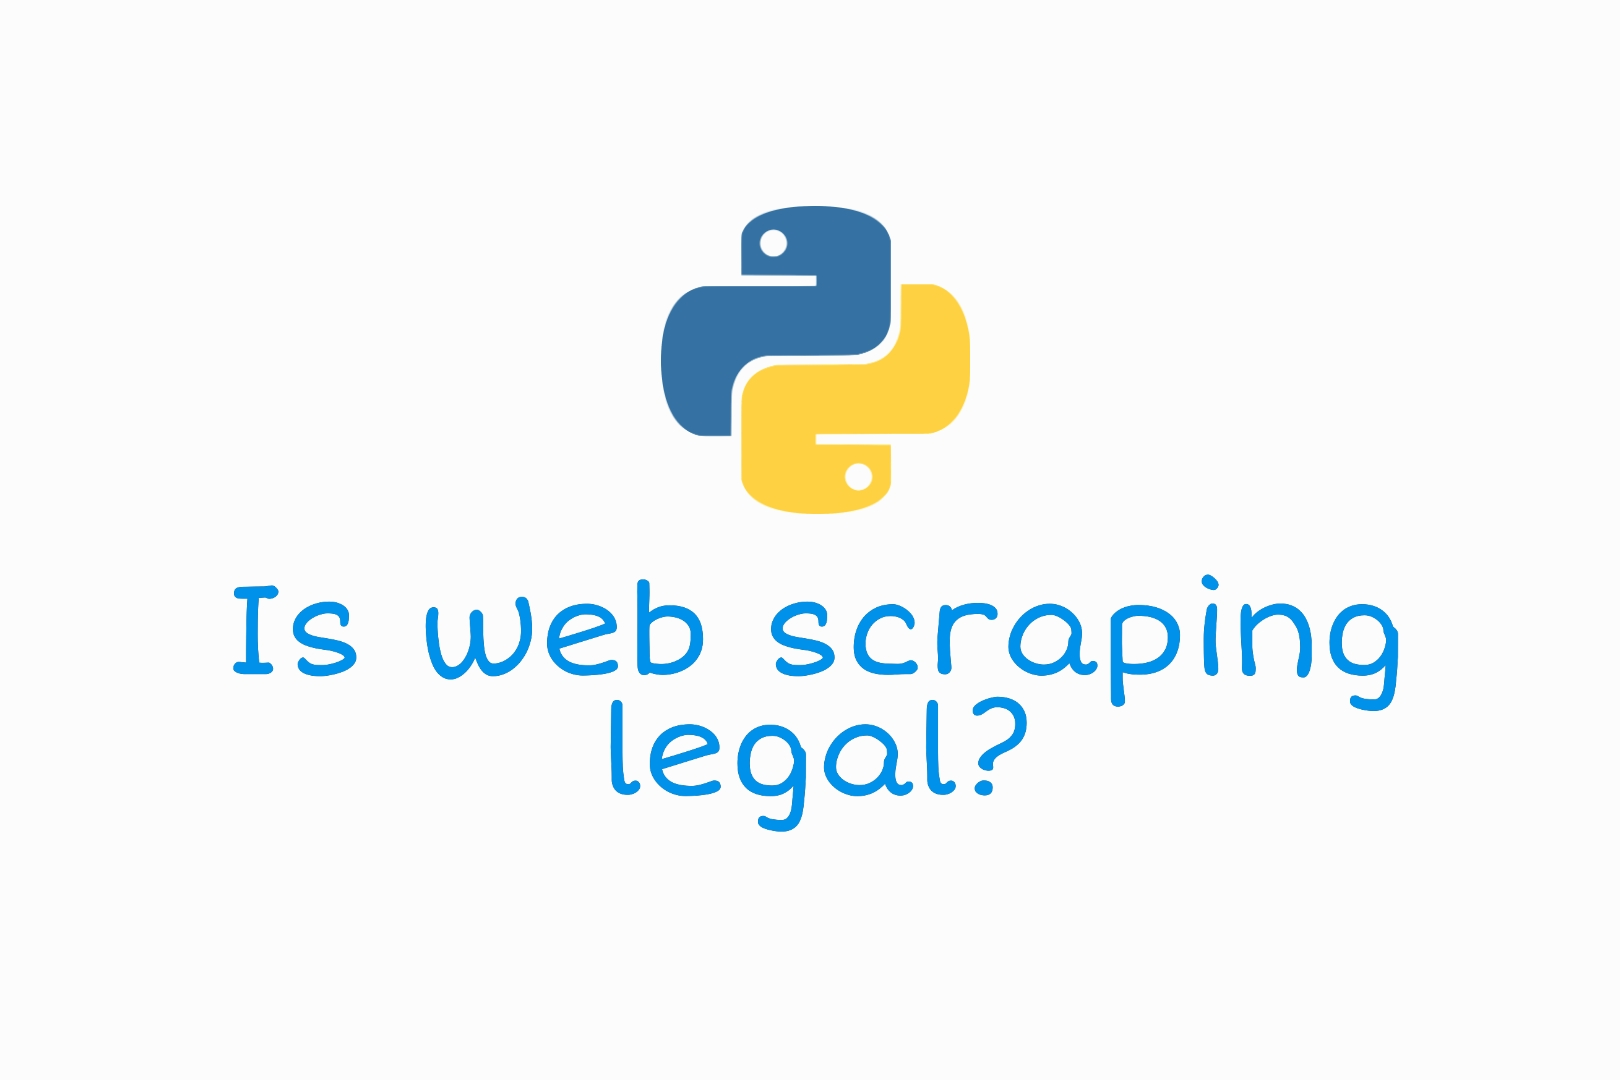 Is web scraping legal?